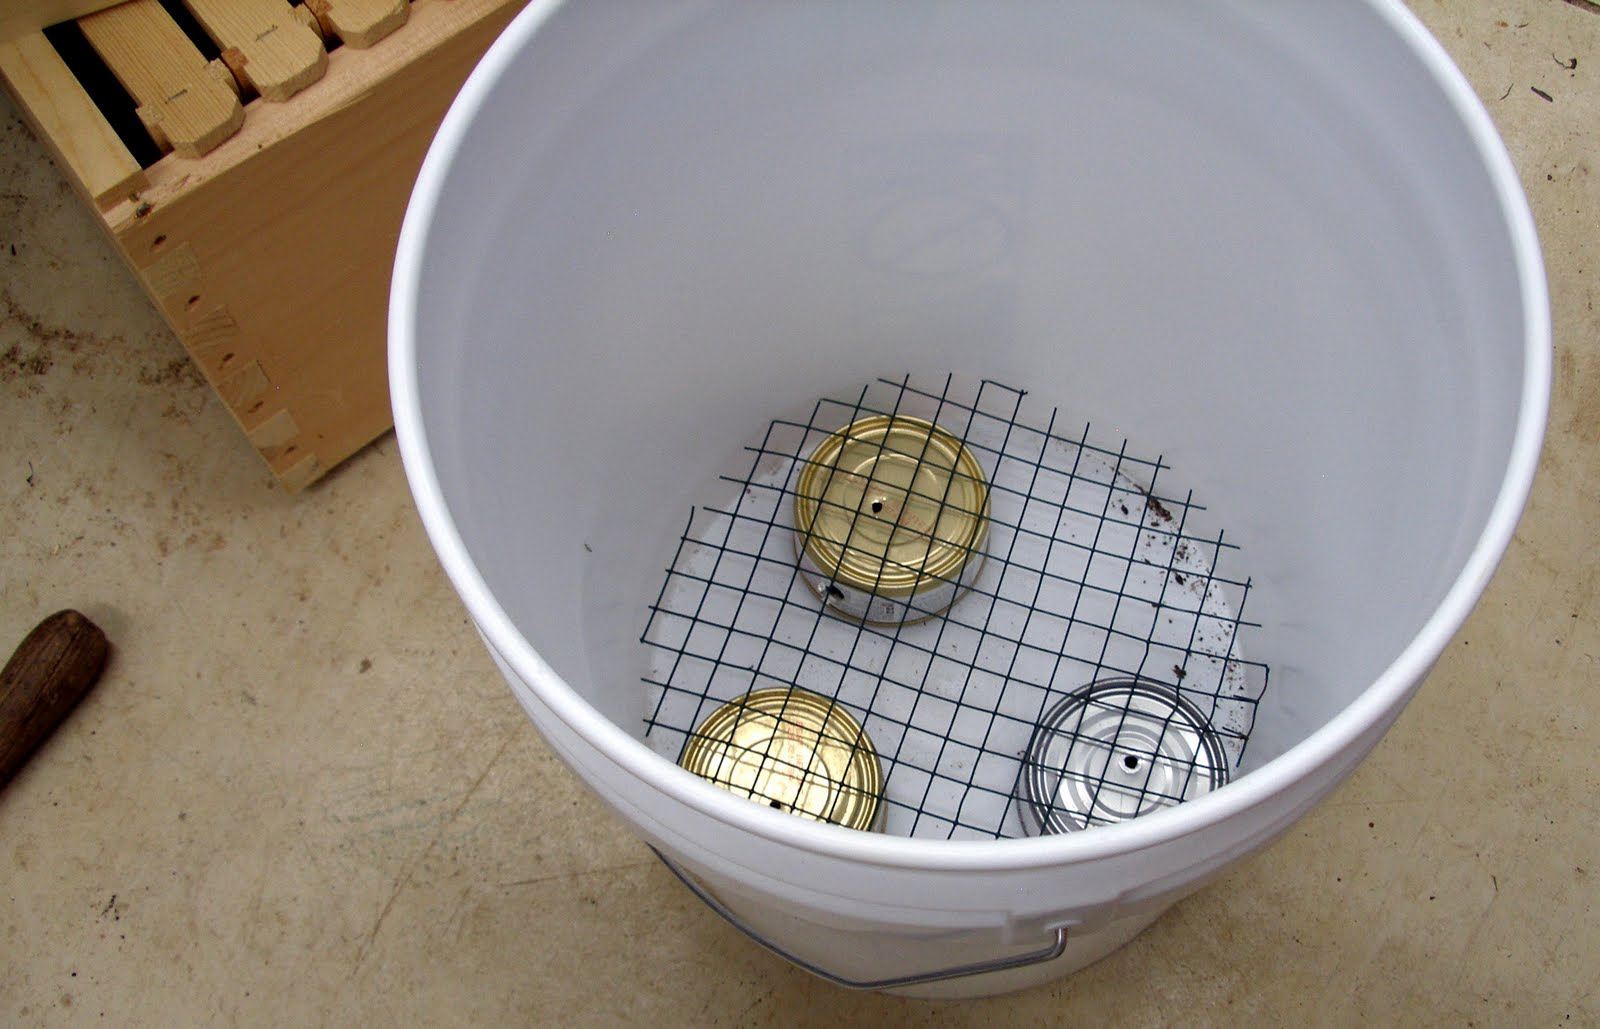 Living the Frugal Life: Potatoes in Buckets 2.0 (Finally!)